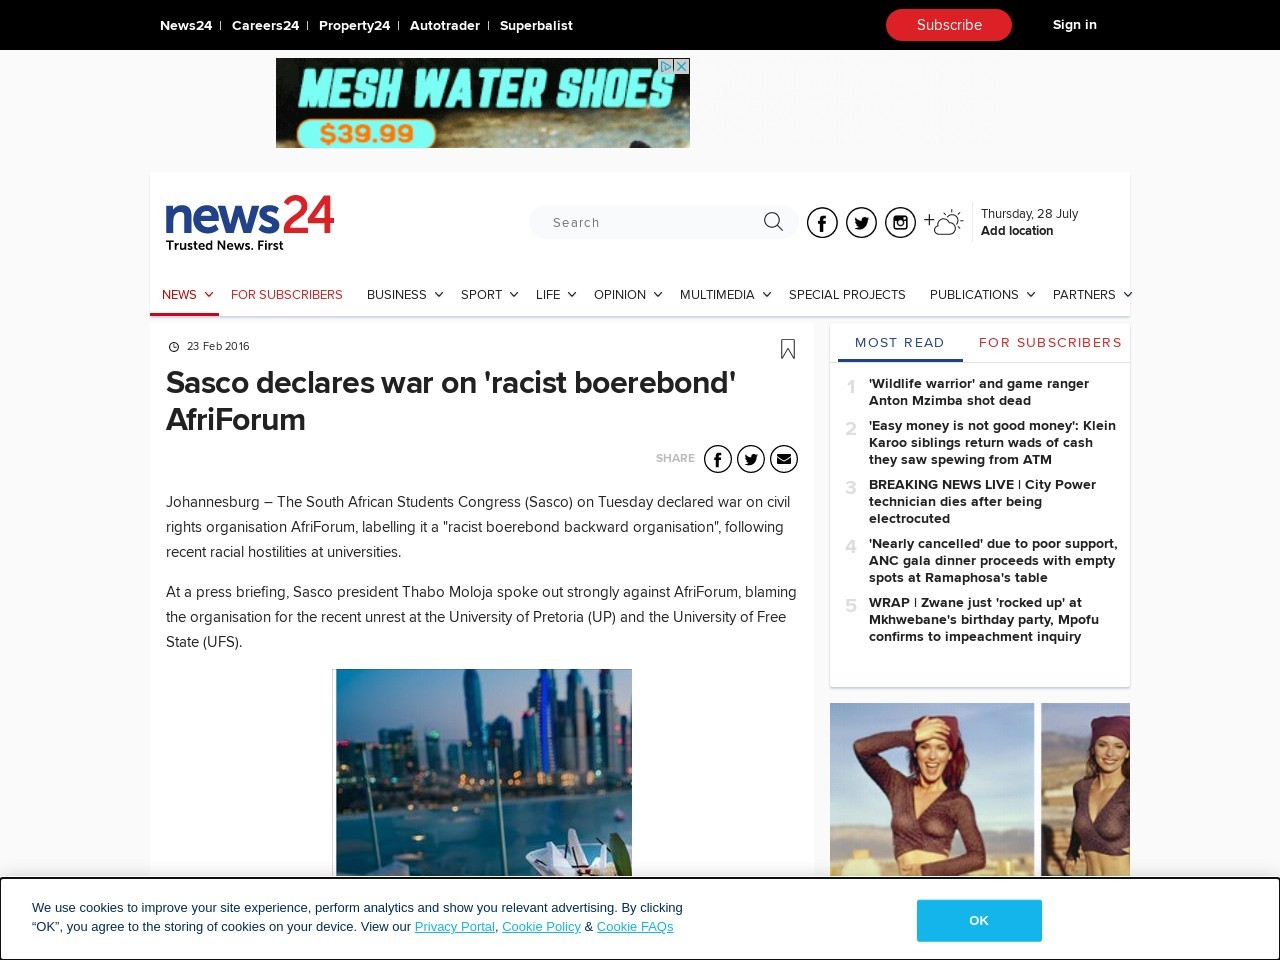 Sasco declares war on 'racist boerebond' AfriForum